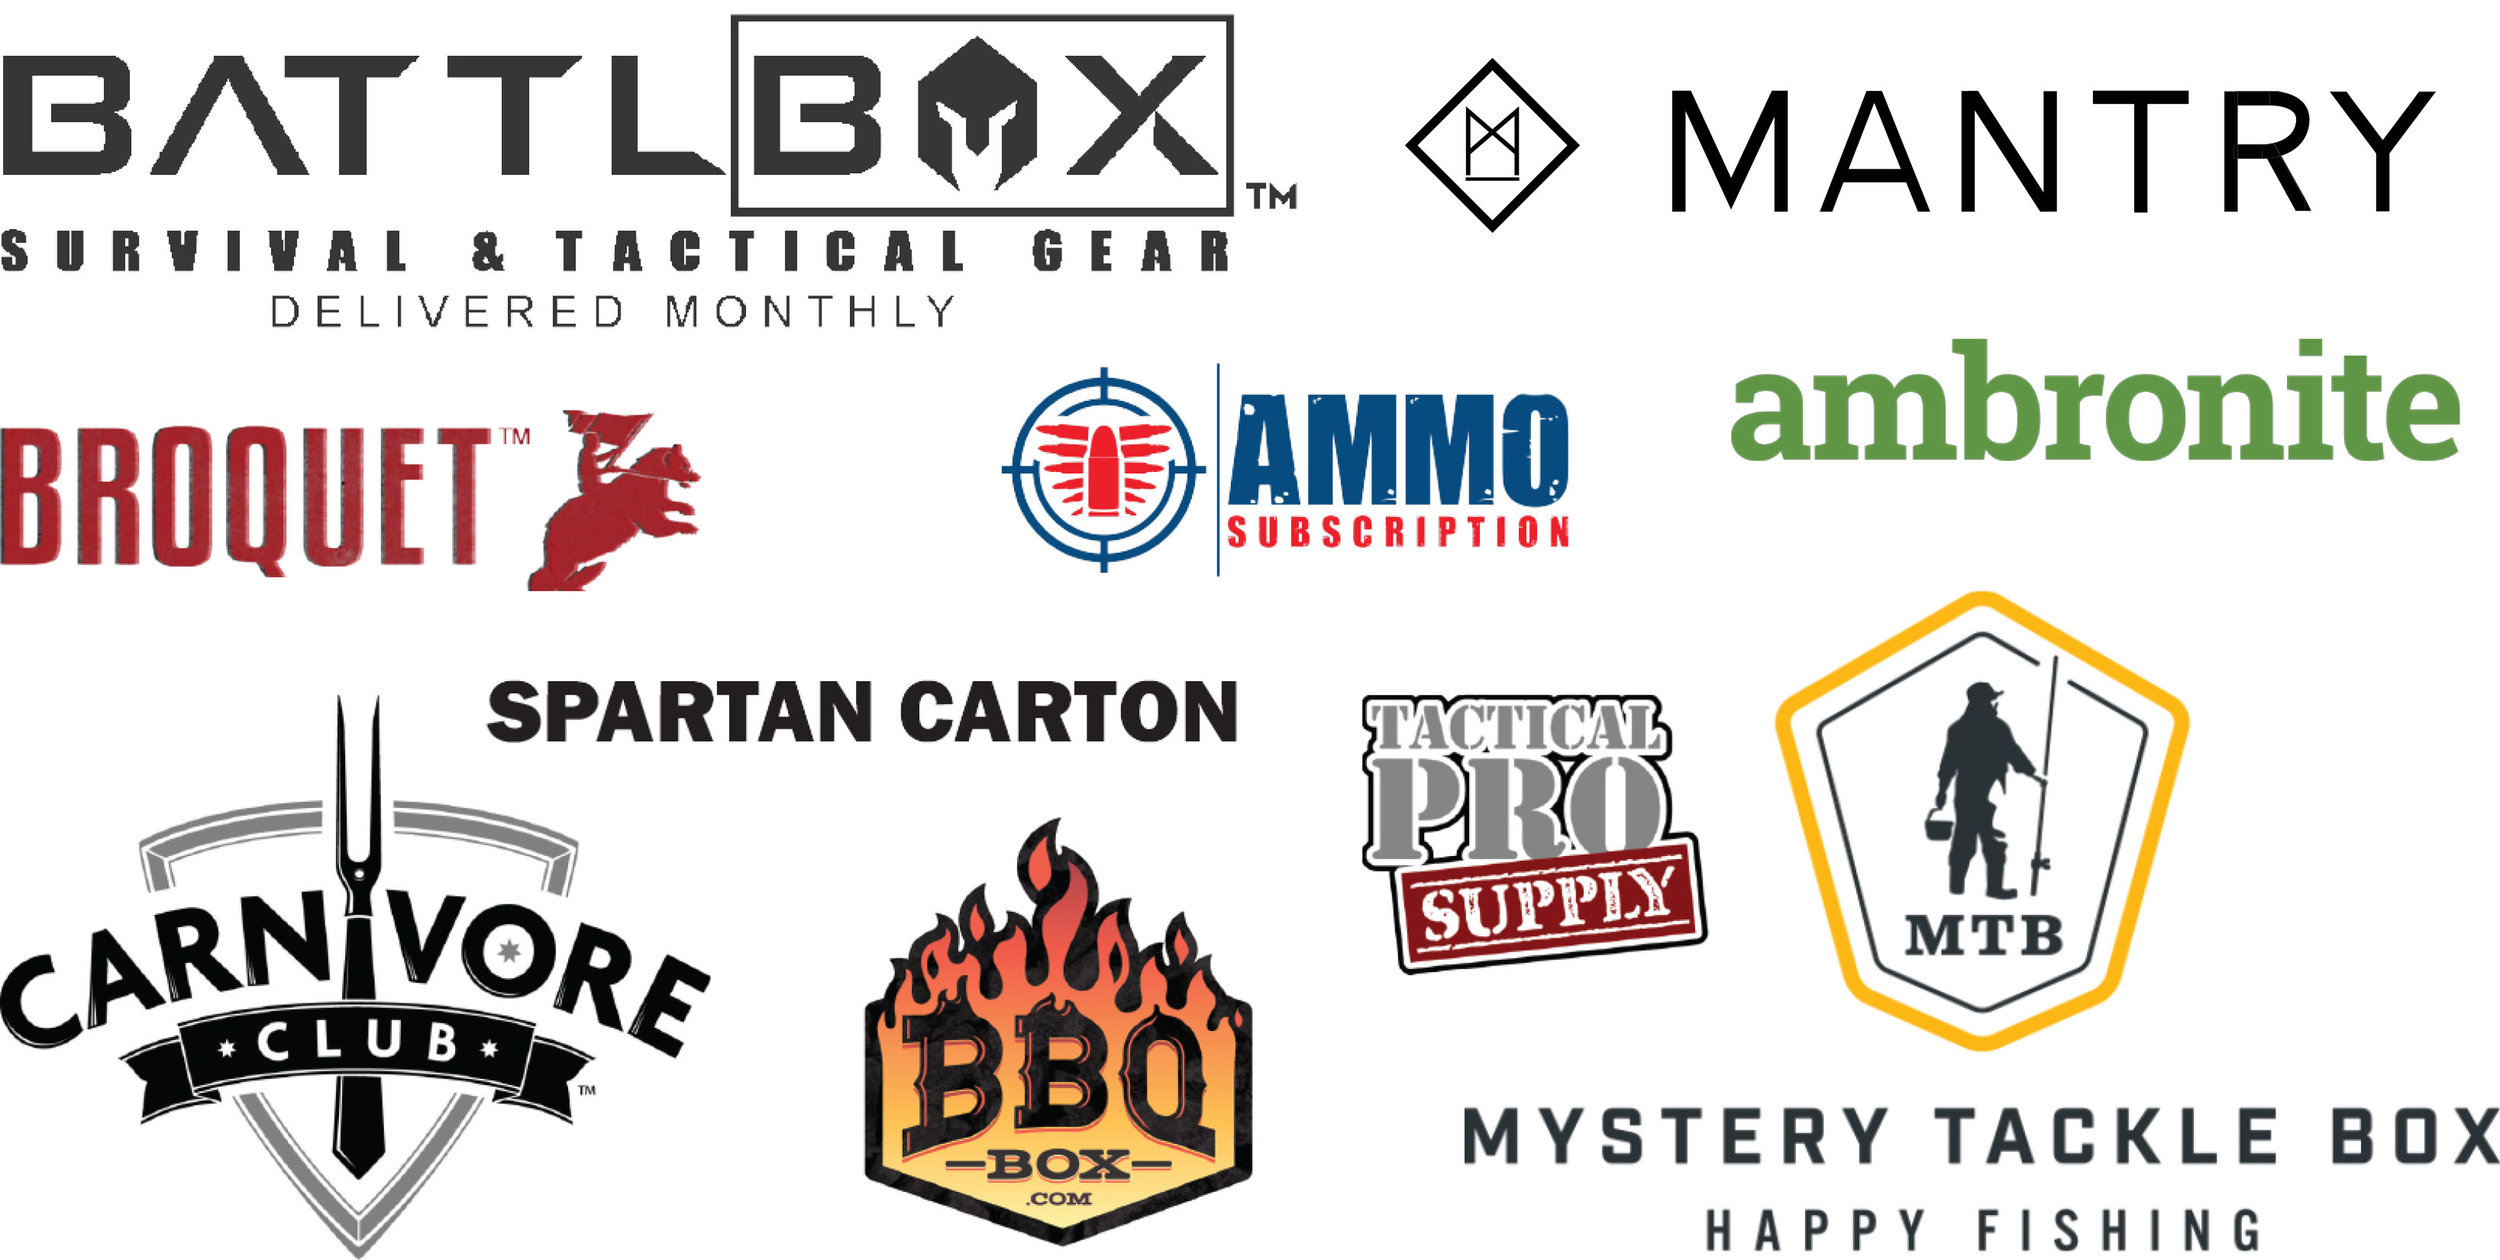 Several of the brands we manage -